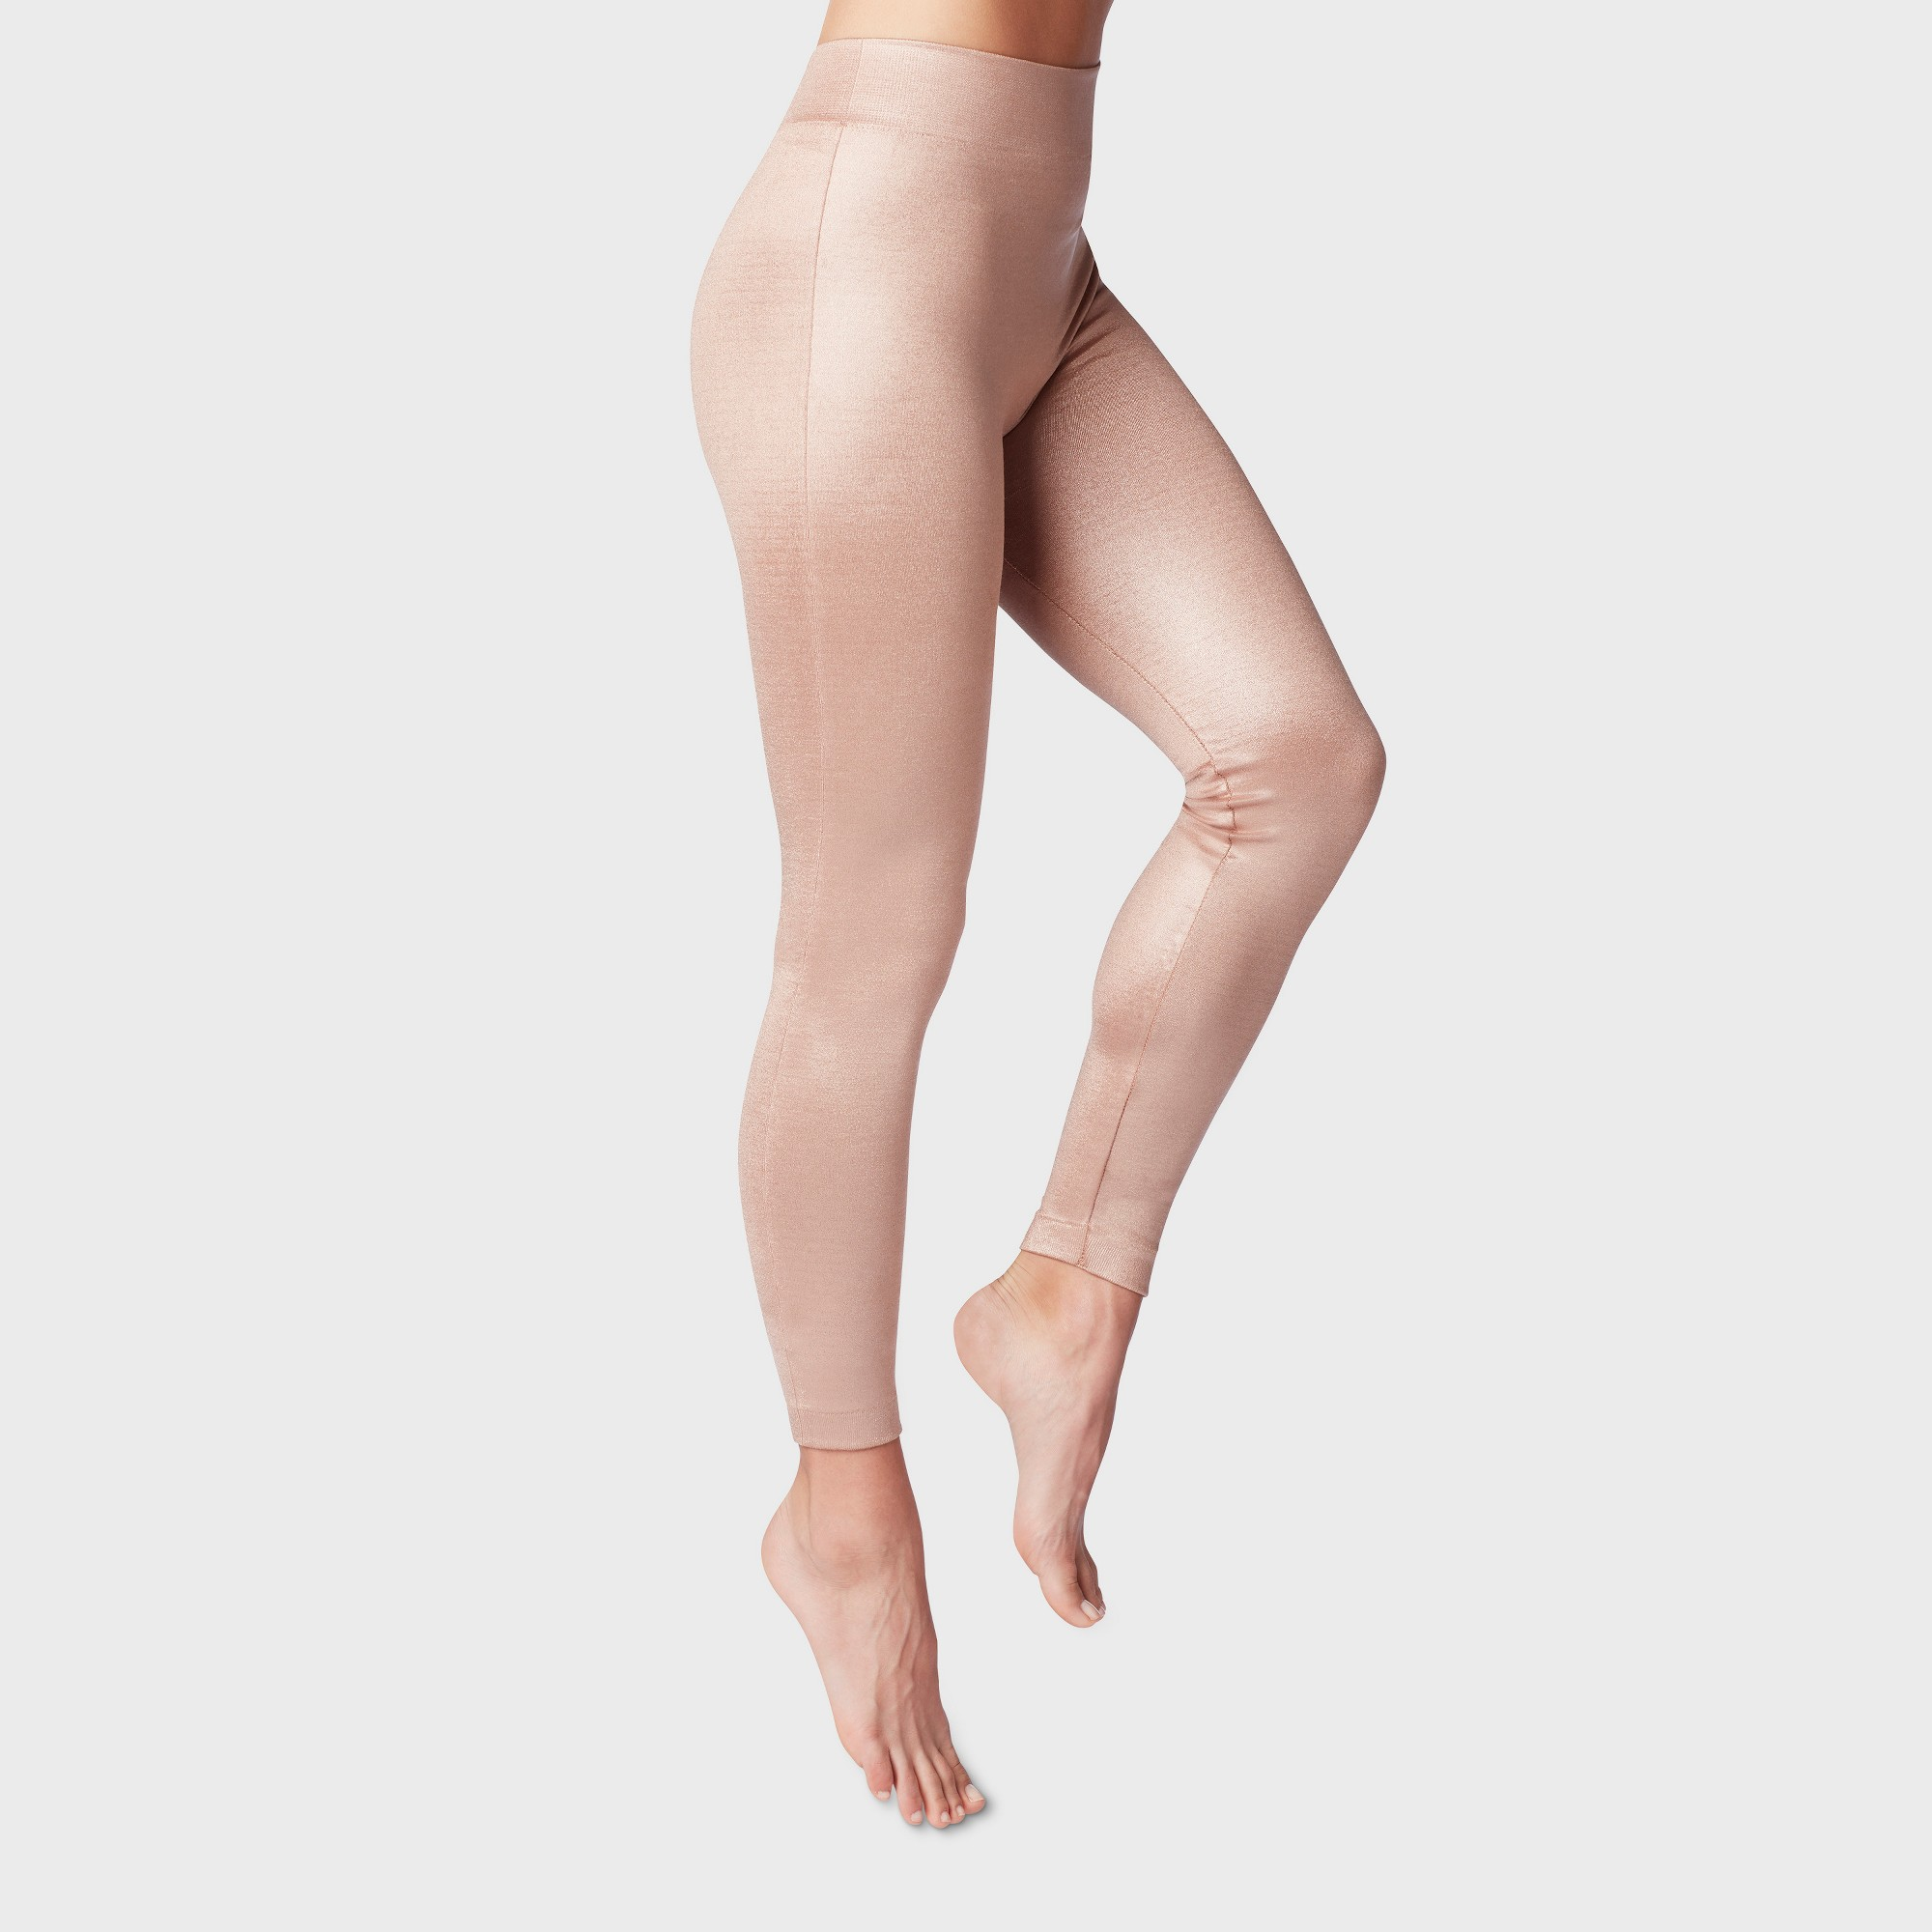 c02732646 Women's Fleece Lined Tights - A New Day Pink S/M, Rose Gold | draw ...